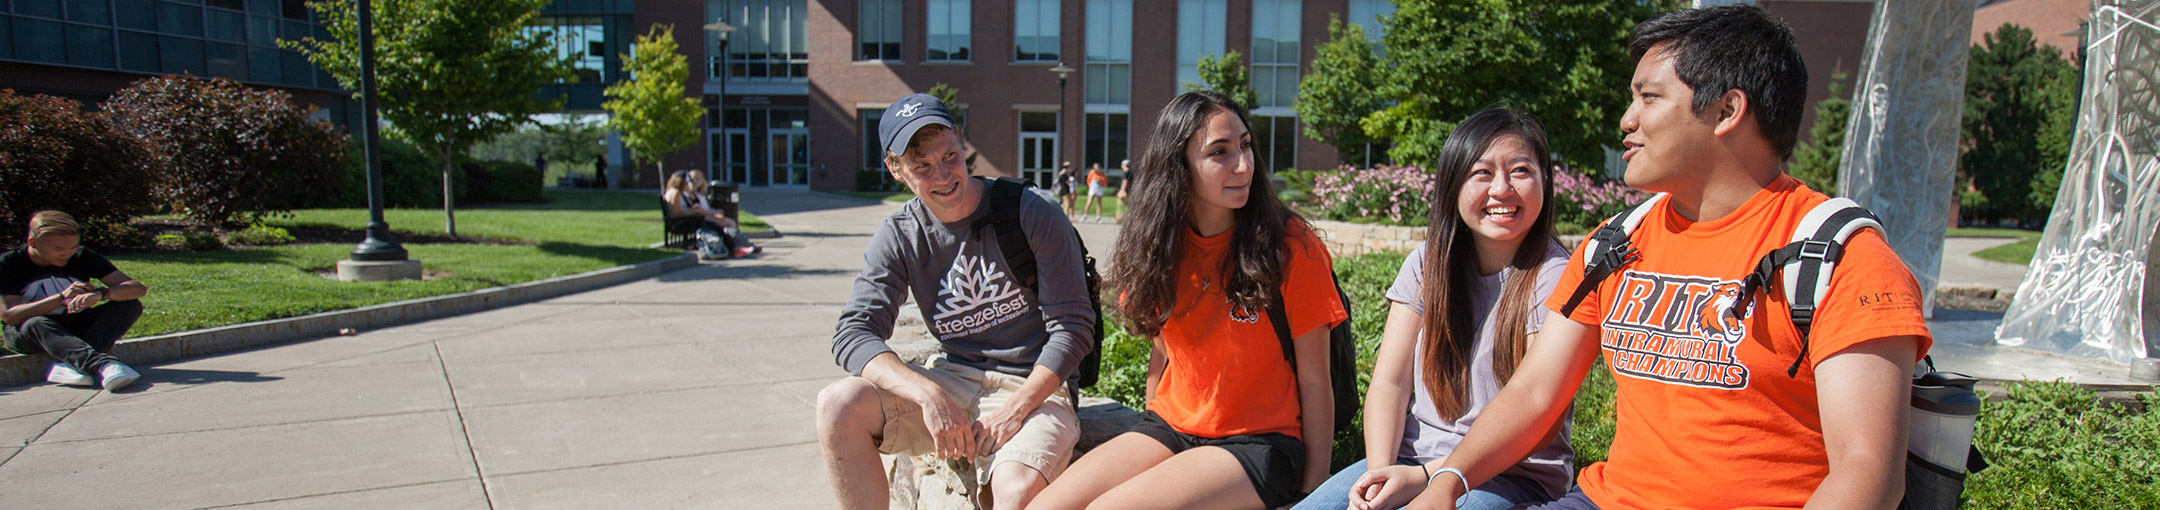 Students sitting on a brick wall in a courtyard on a sunny day wearing orange RIT shirts